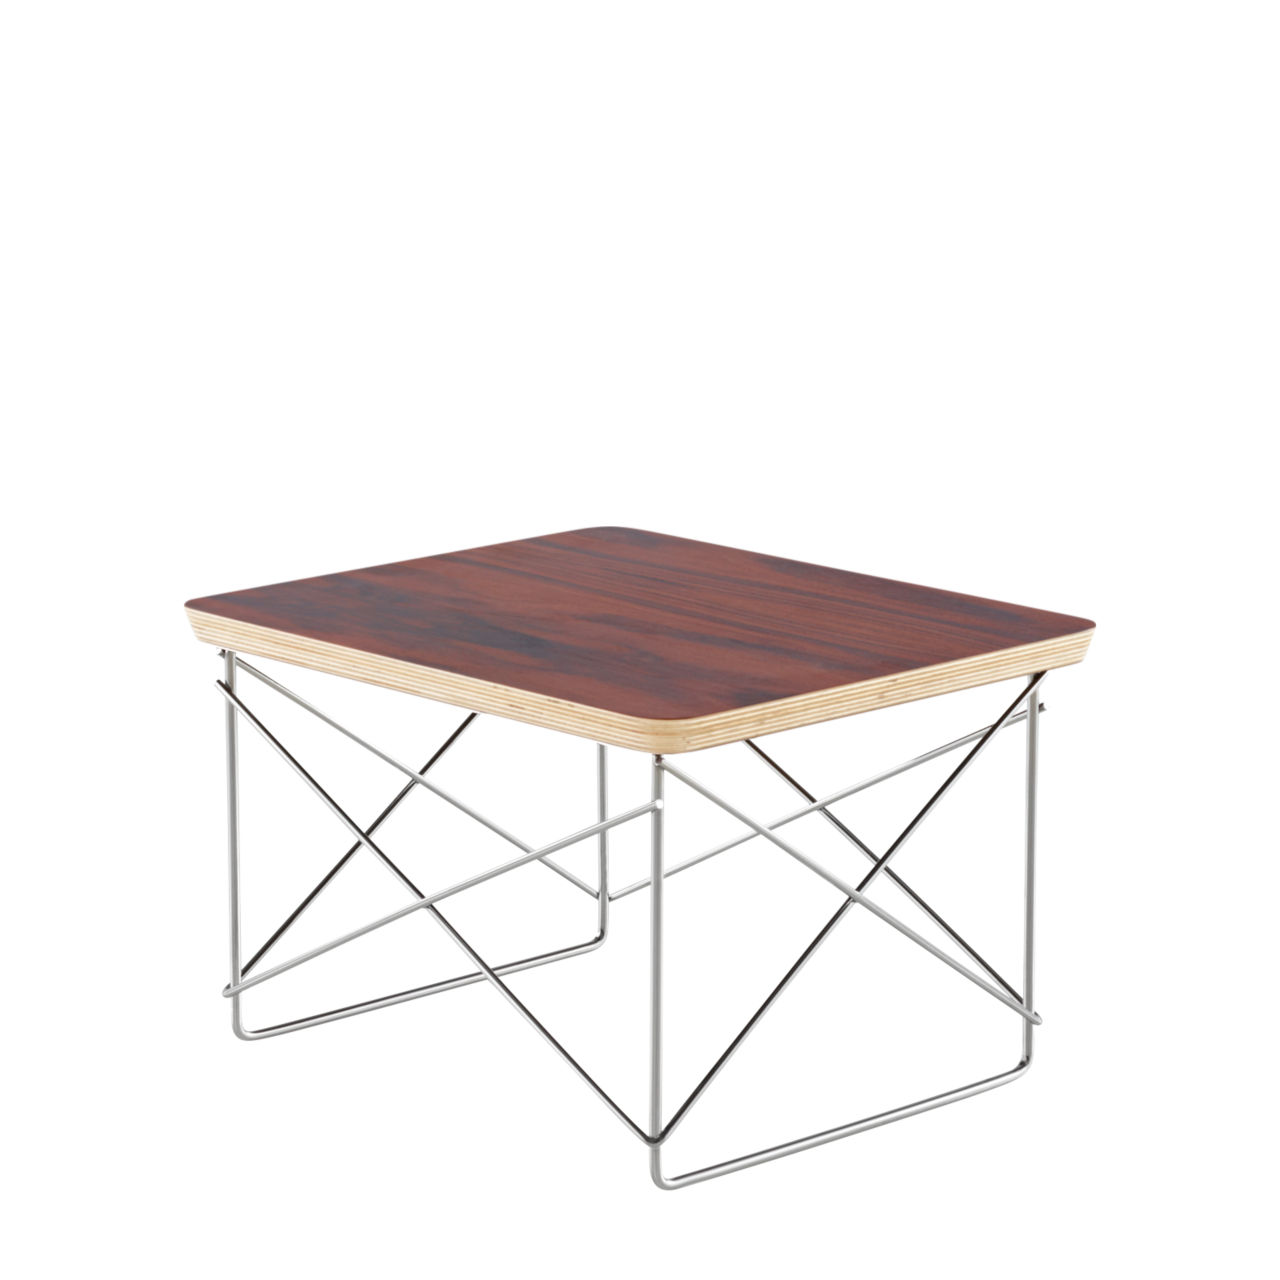 Eames Wire Base Table in Santos by Herman Miller